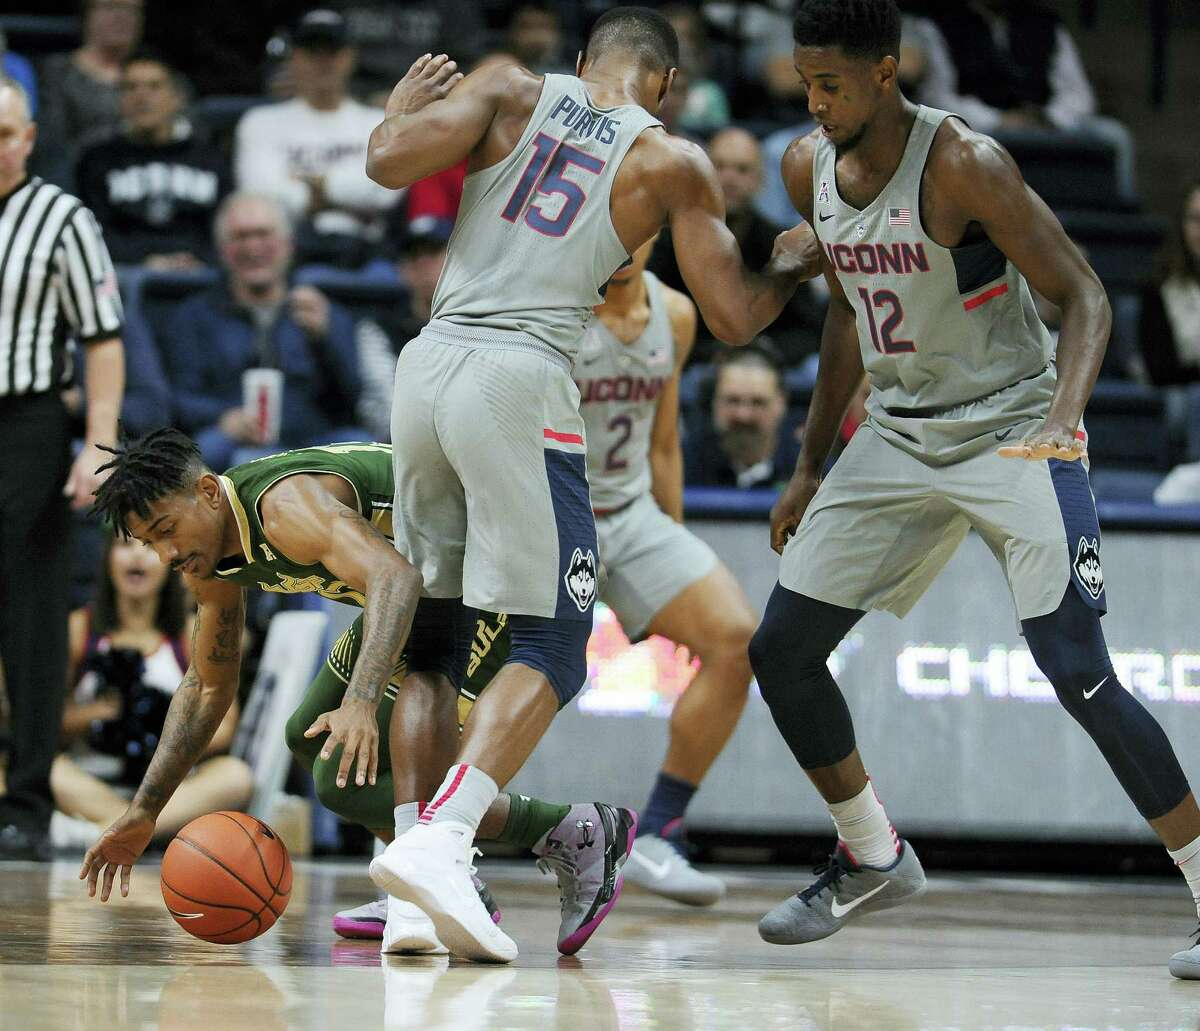 South Florida's Geno Thorpe stumbles between Connecticut's Rodney Purvis (15) and Kentan Facey (12) during the first half Wednesday in Storrs.